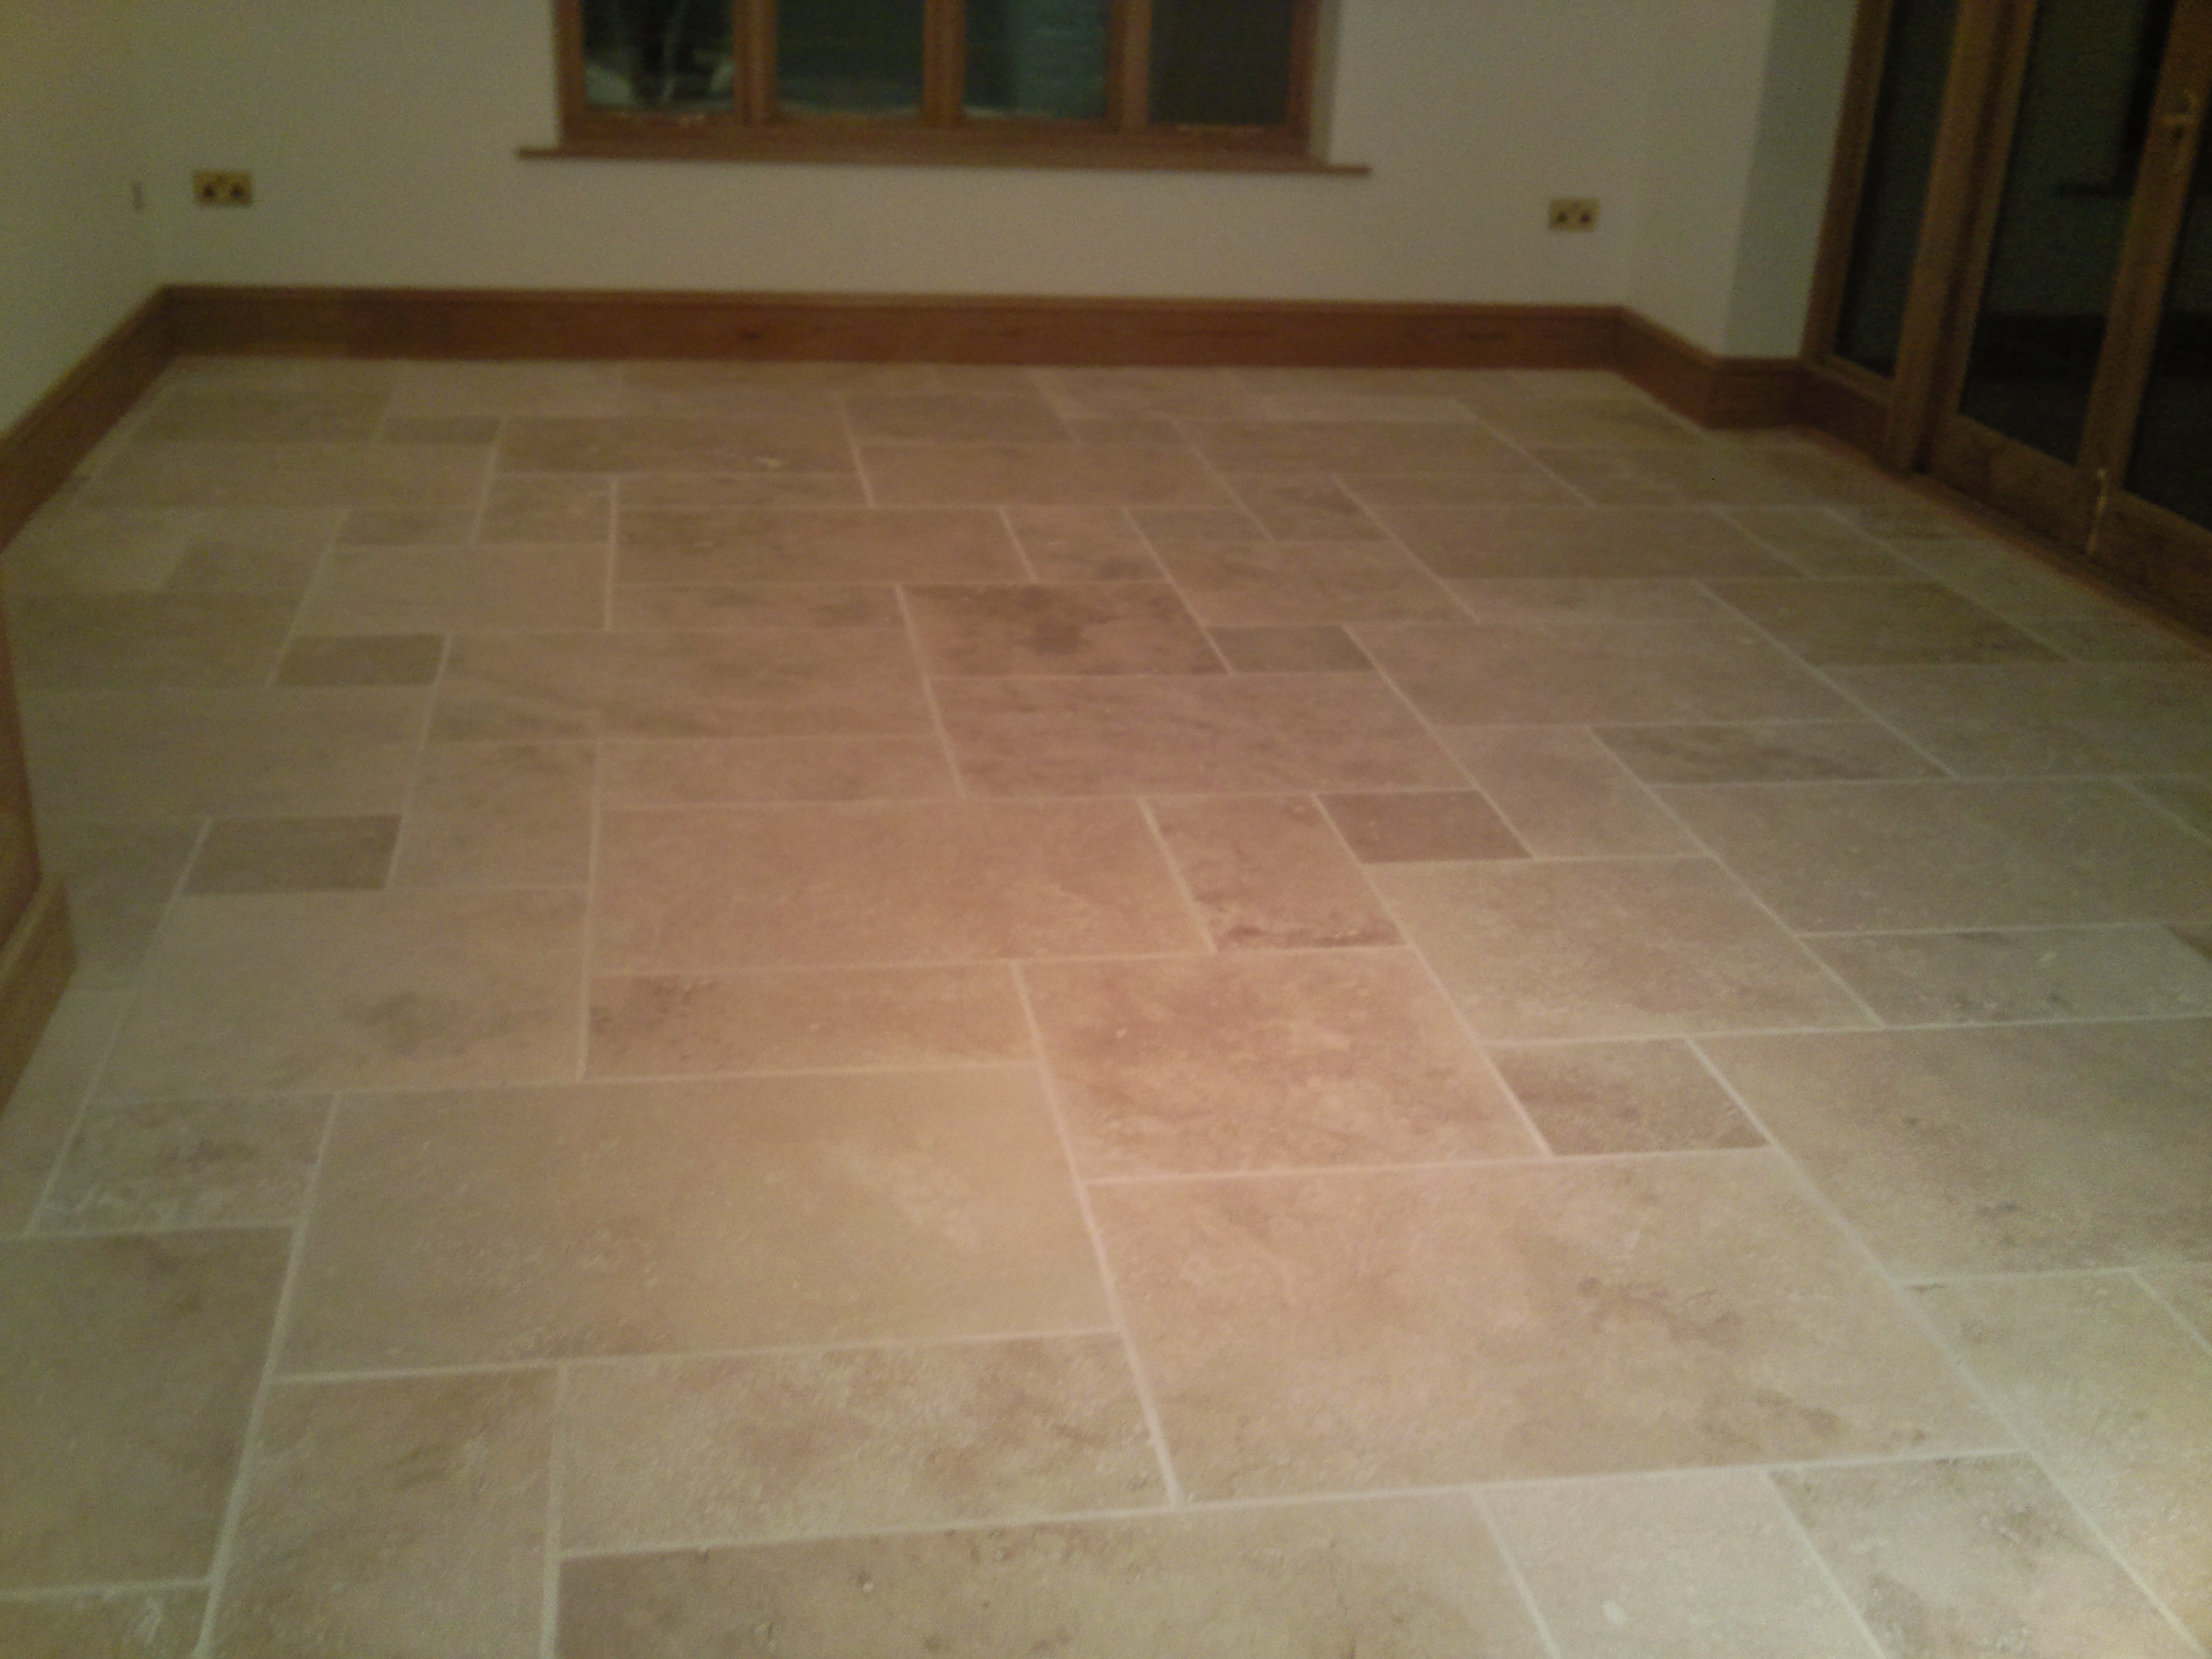 Tiling contractors lonon expert tilers north london roman opus stone floor dailygadgetfo Choice Image